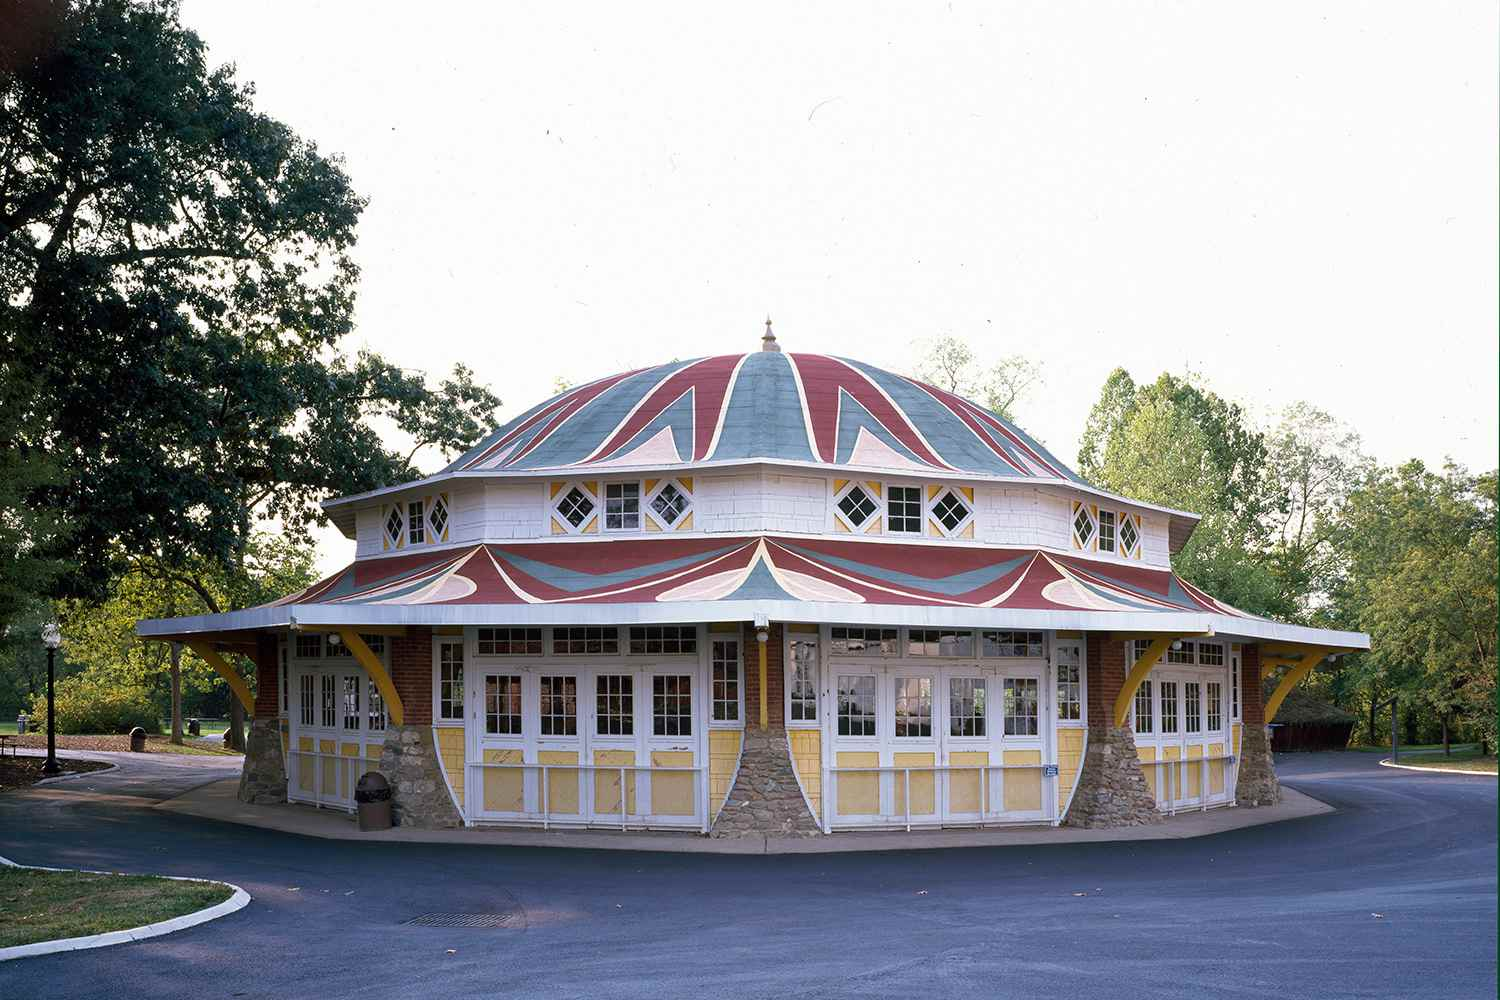 Glen Echo Park, Glen Echo, Maryland